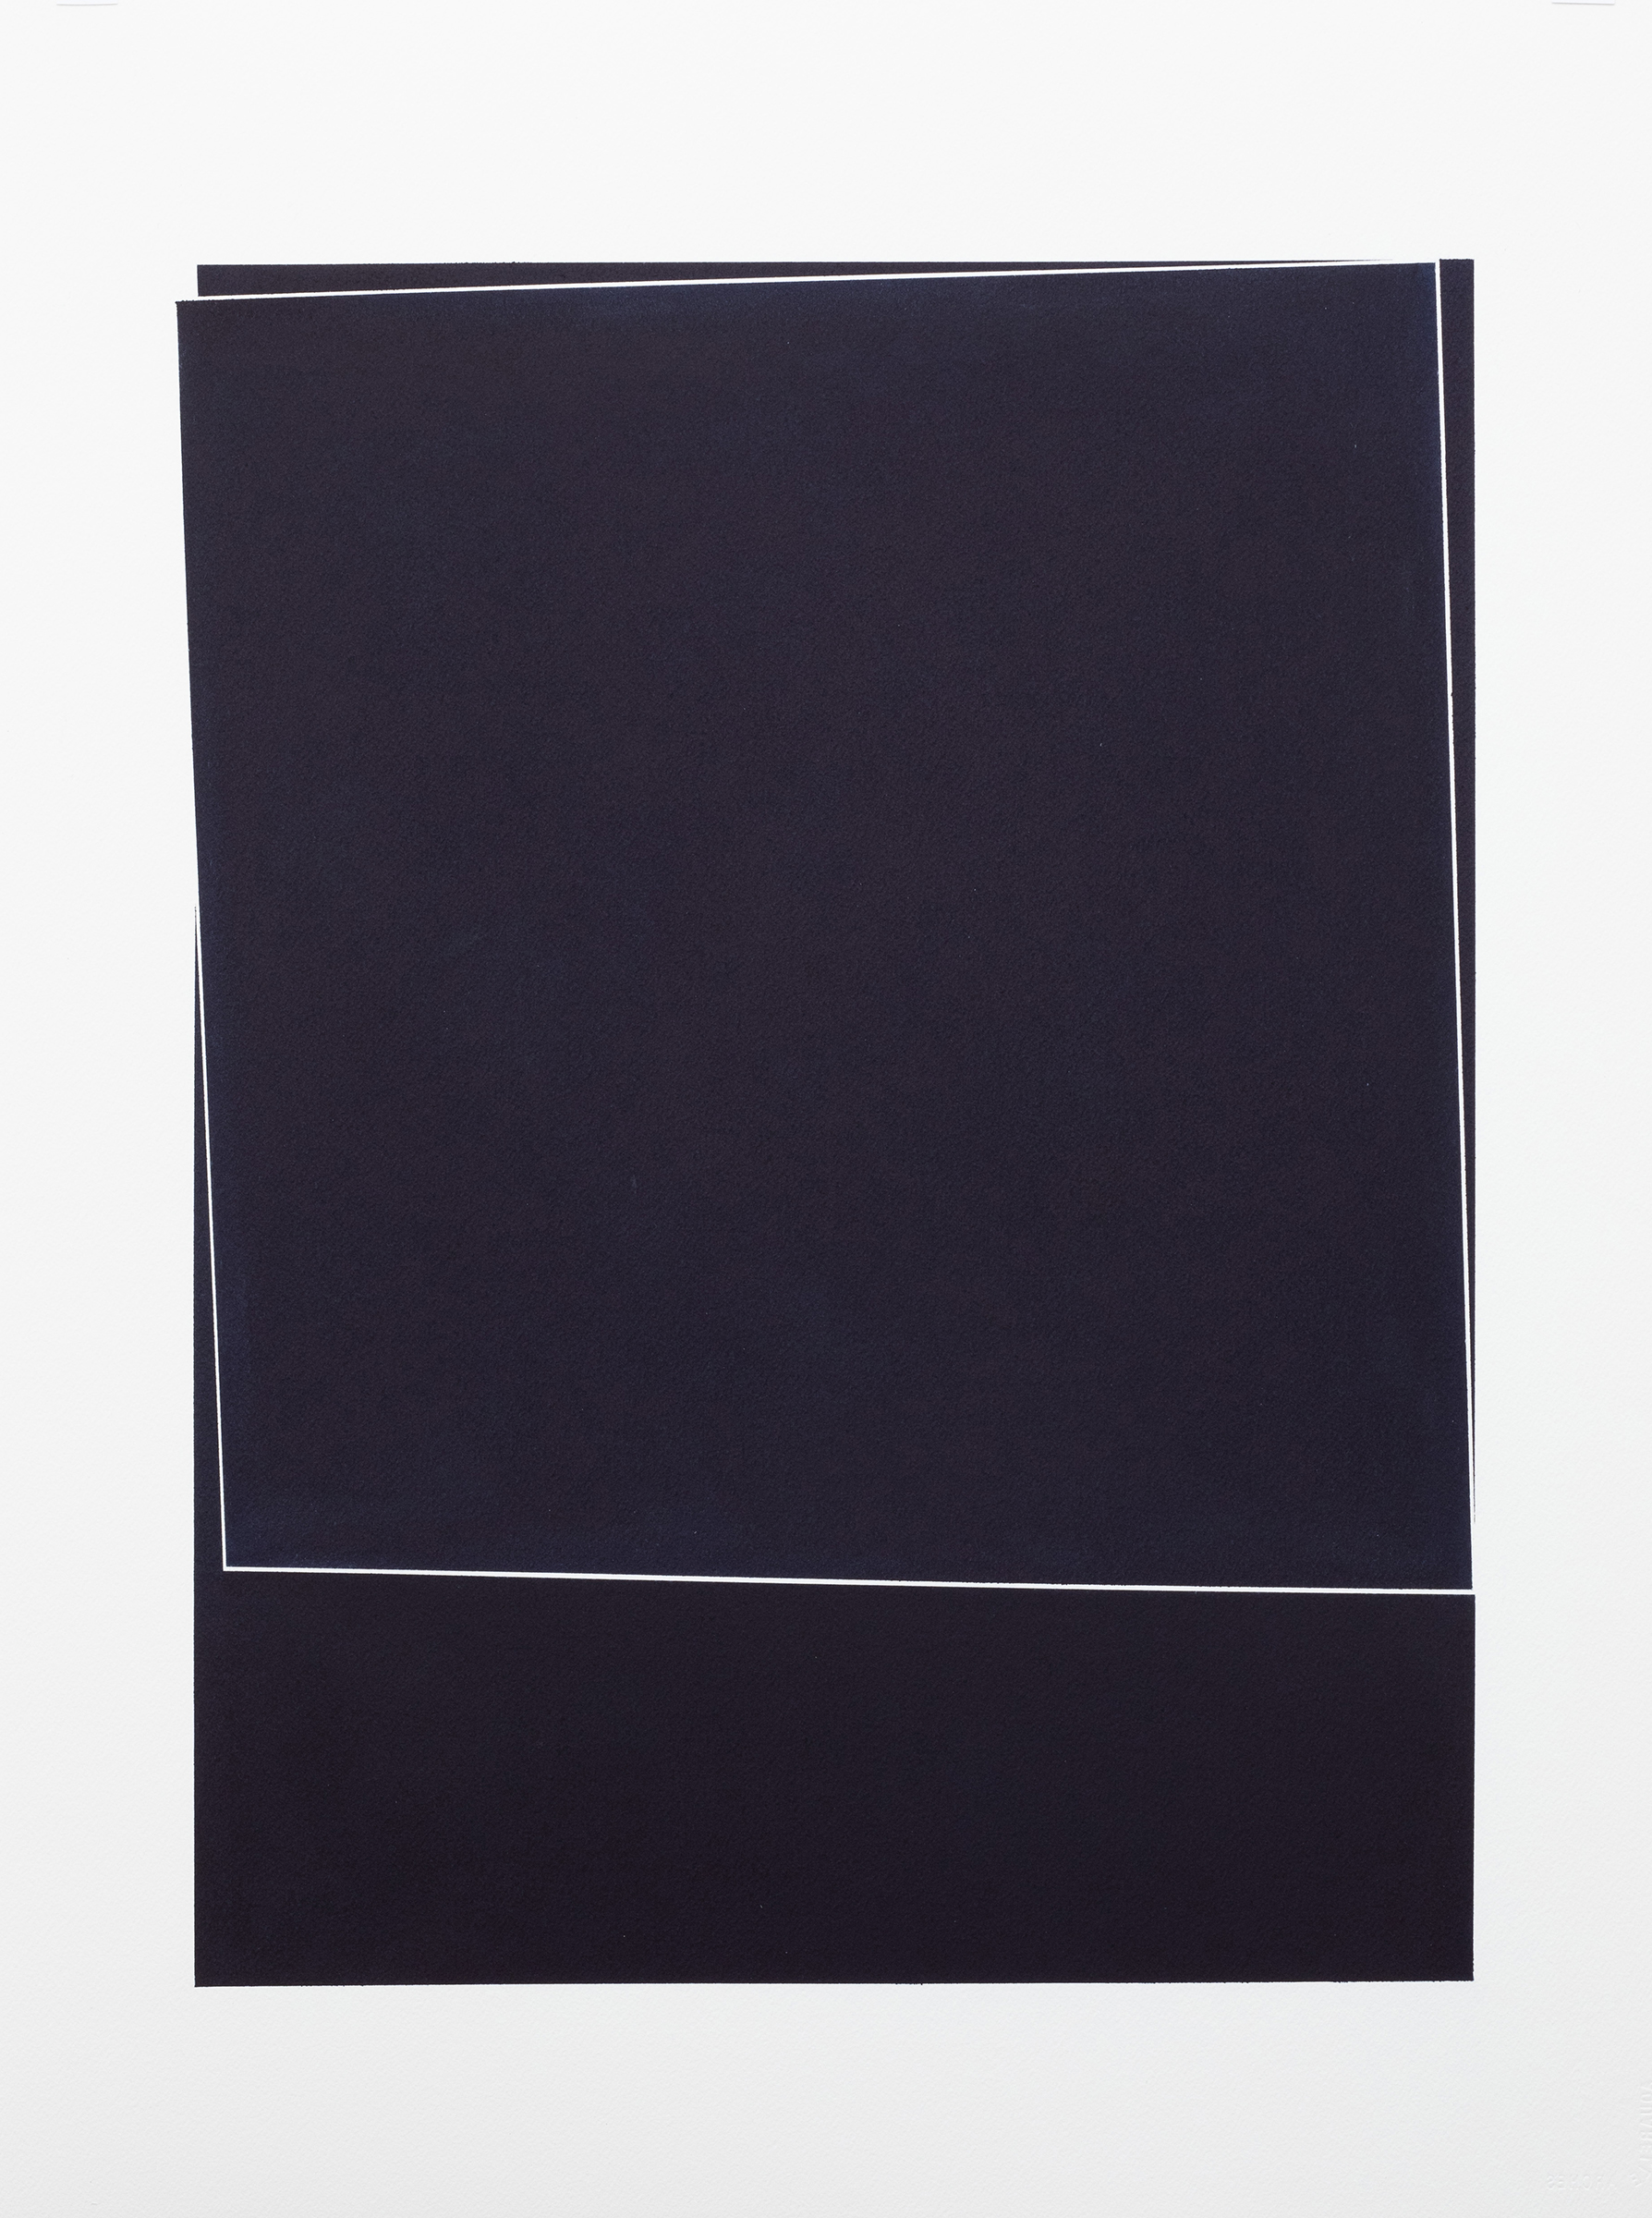 "Untitled, 2018-0901 , 2018 indigo pigment in wax on paper 30 x 22"" paper"